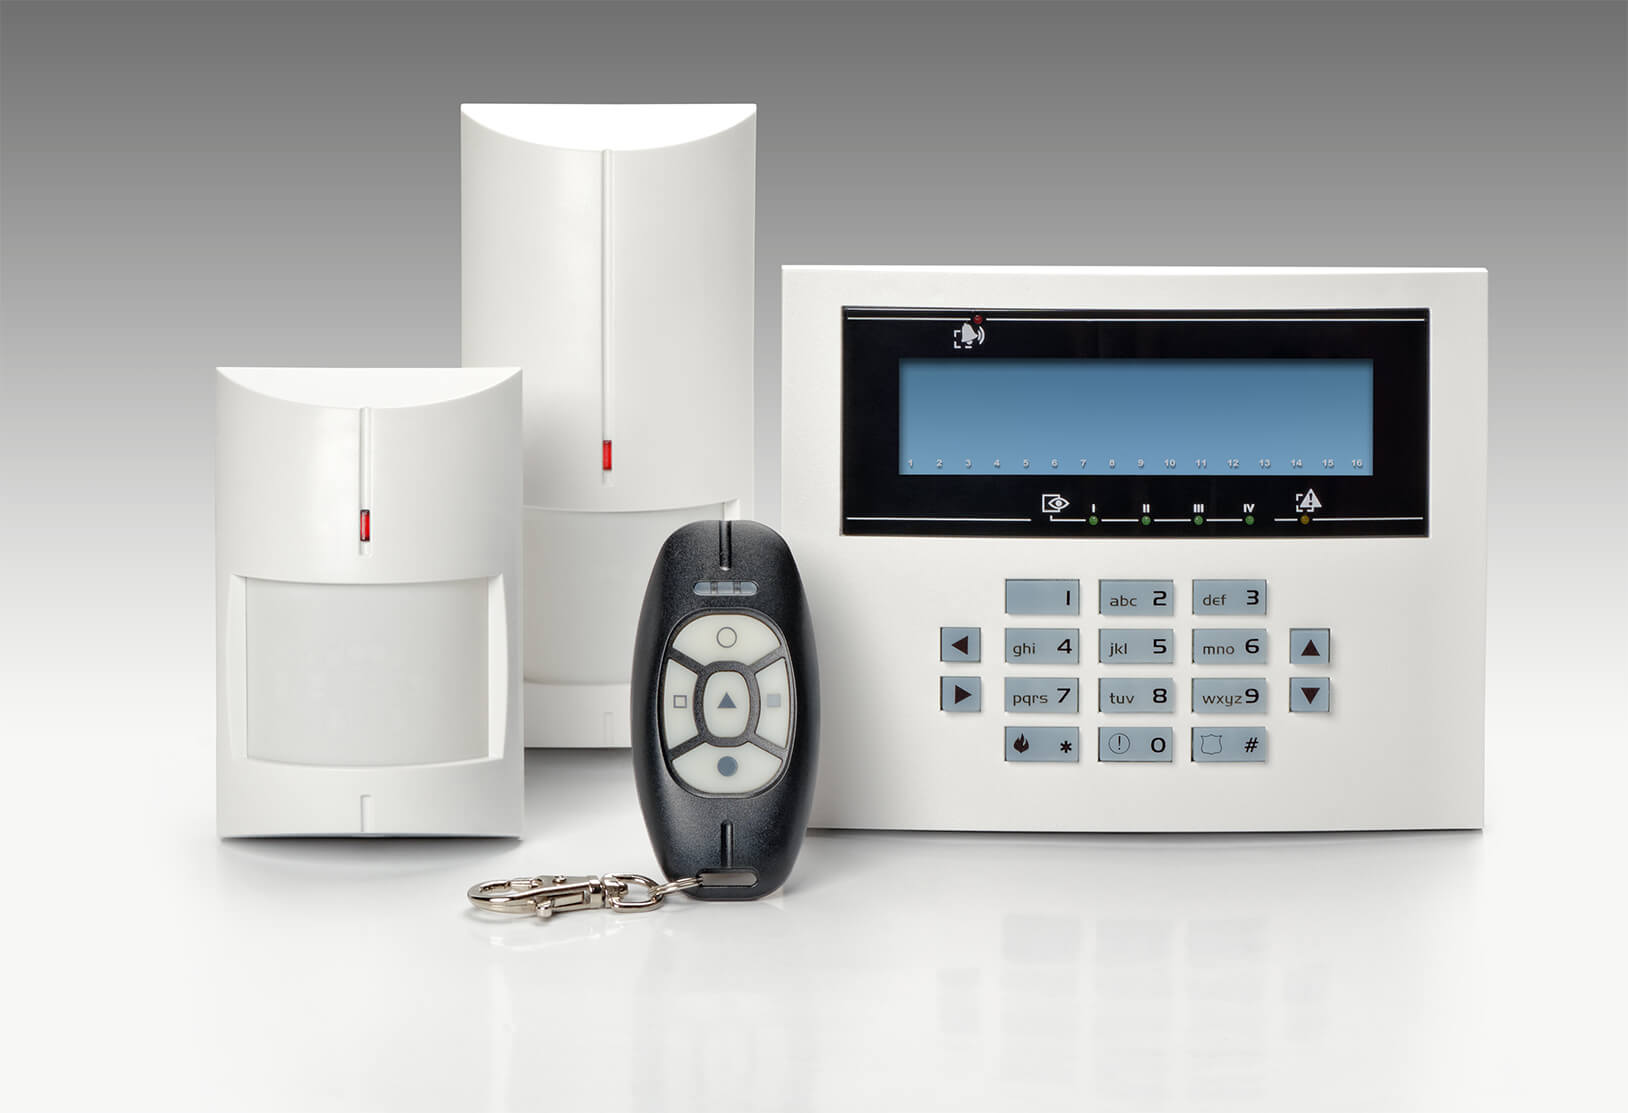 Business & Commercial NSI / NACOSS Approved Burglar Alarms In South London - Local South London security company.Call 02078872244 - Dedicated to Safety & Security. Companies, shops,hotels  ..